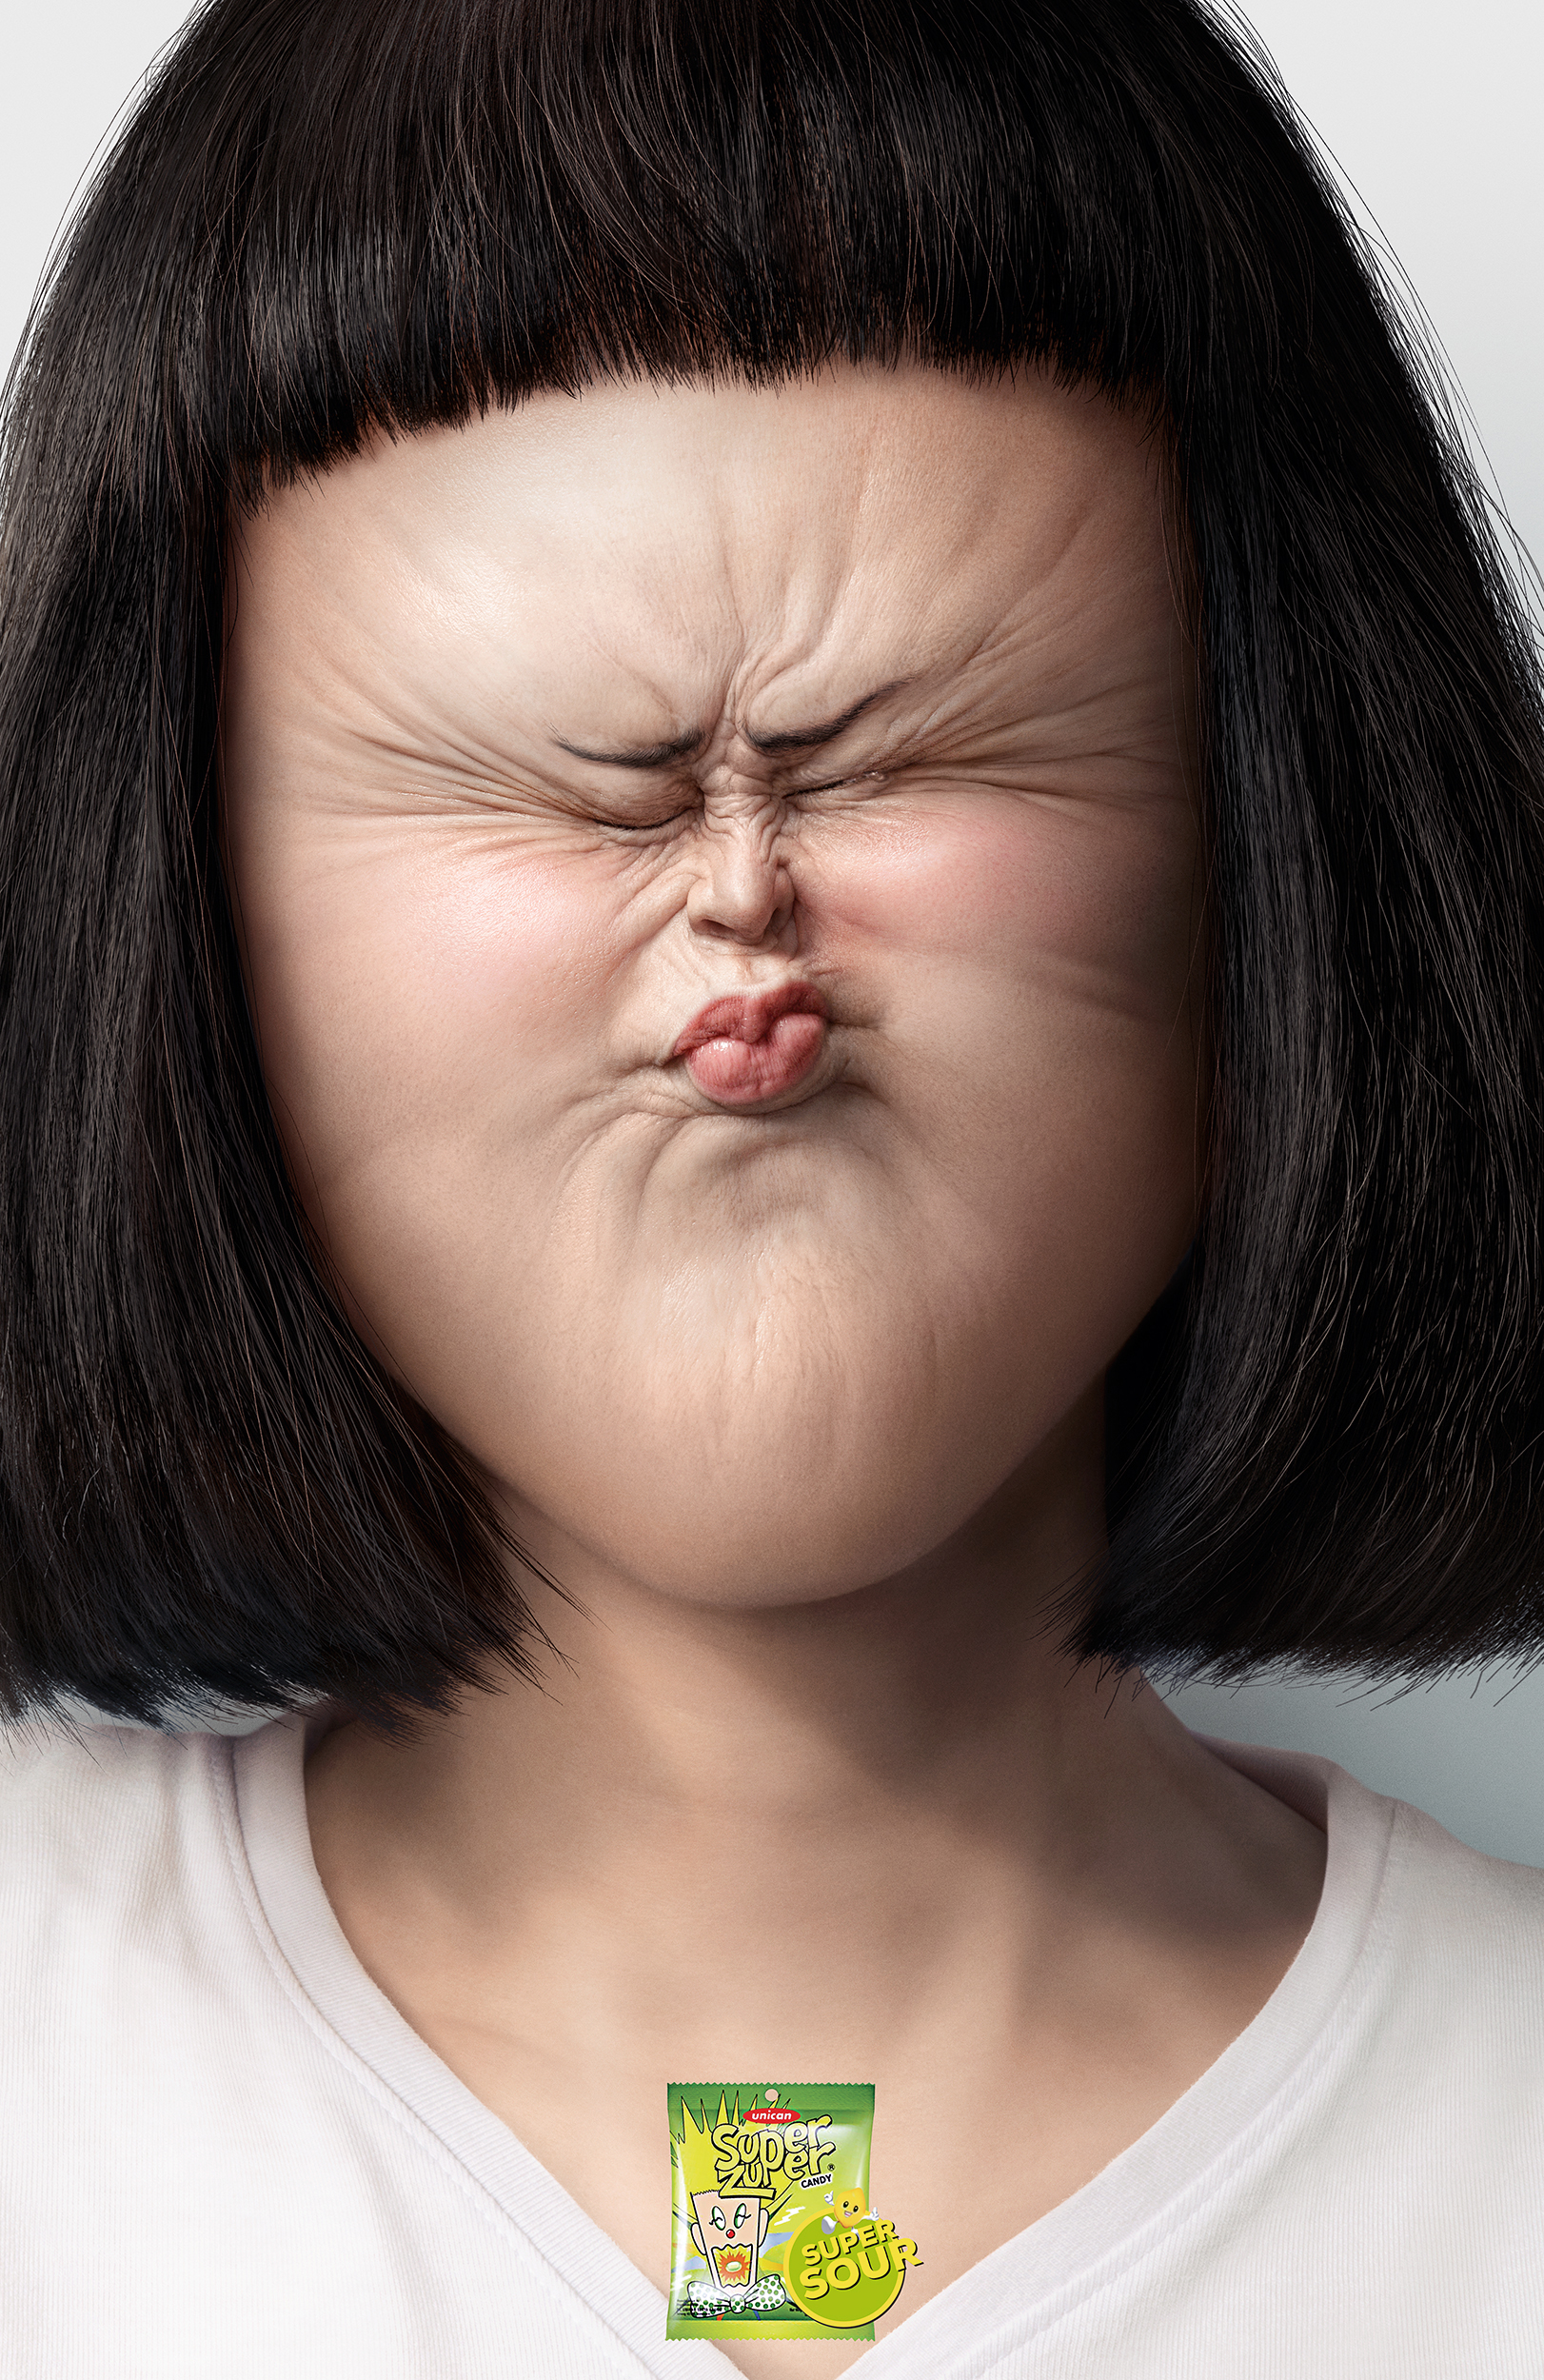 Sour Faced Woman_40x60cm_Print Ad_Submission.jpg